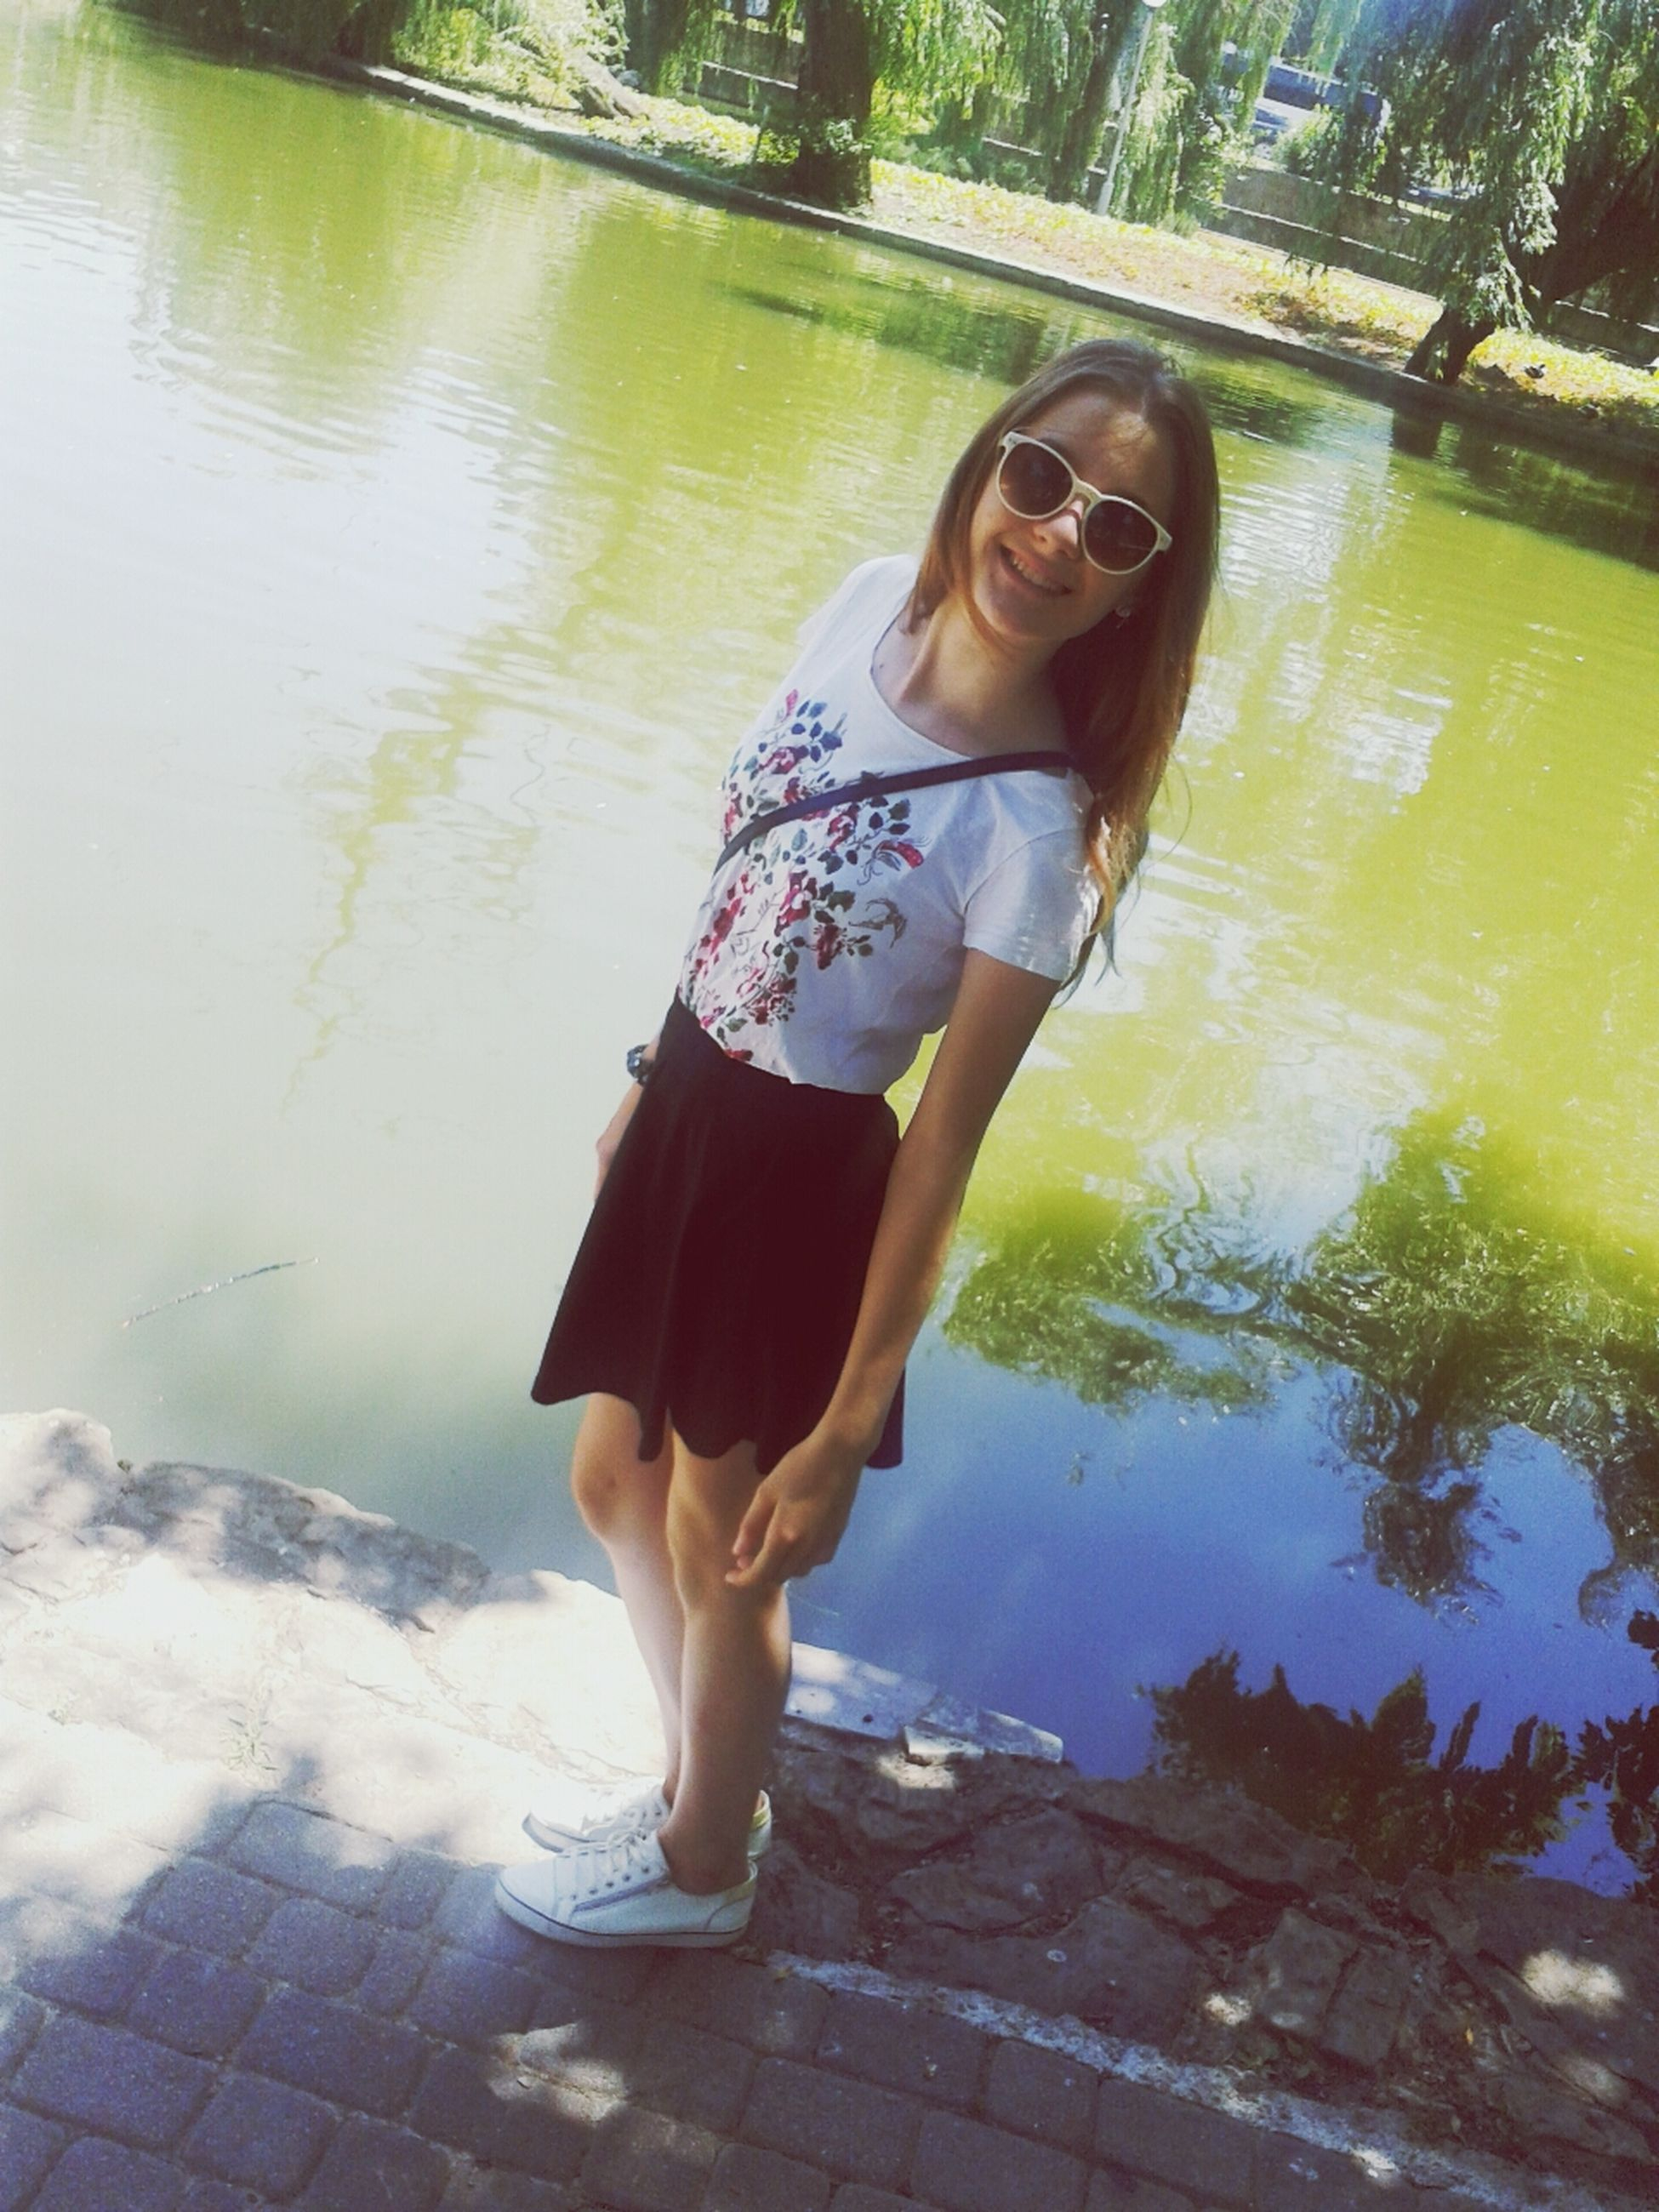 water, lifestyles, person, lake, leisure activity, young adult, casual clothing, full length, standing, reflection, young women, three quarter length, portrait, looking at camera, day, front view, high angle view, sitting